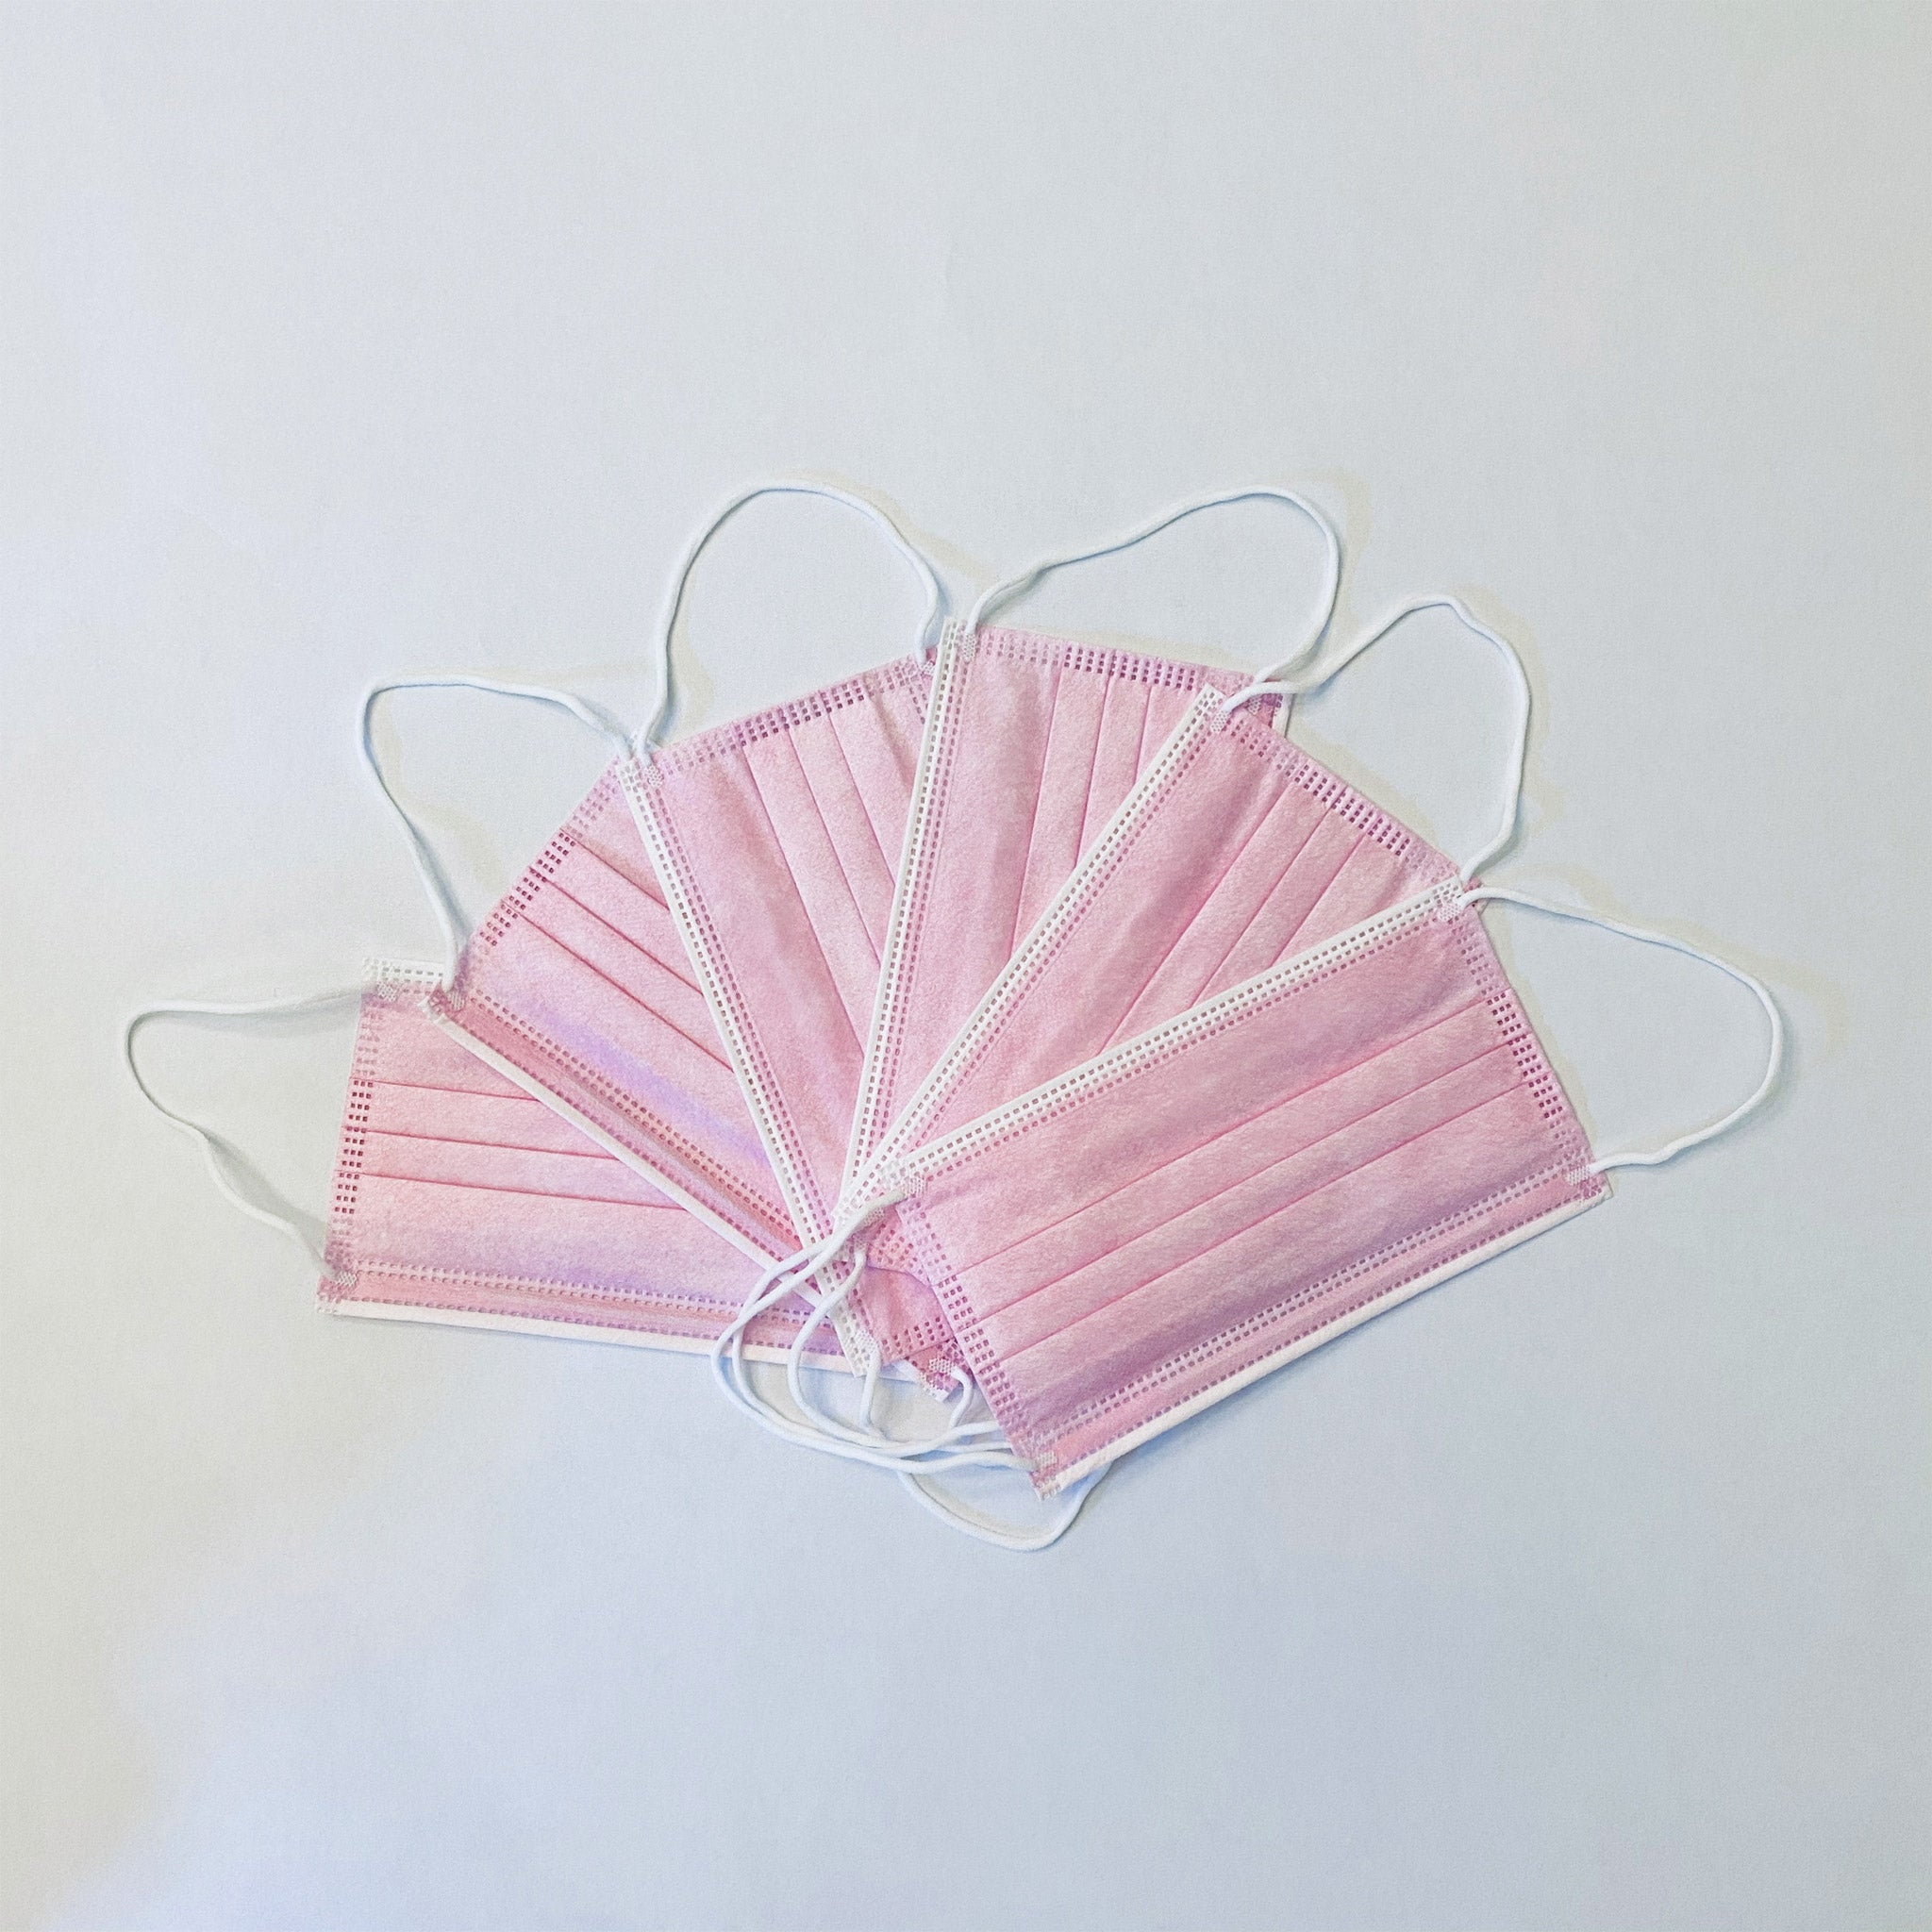 Pink 3-Ply Disposable Face Masks (50-pack)